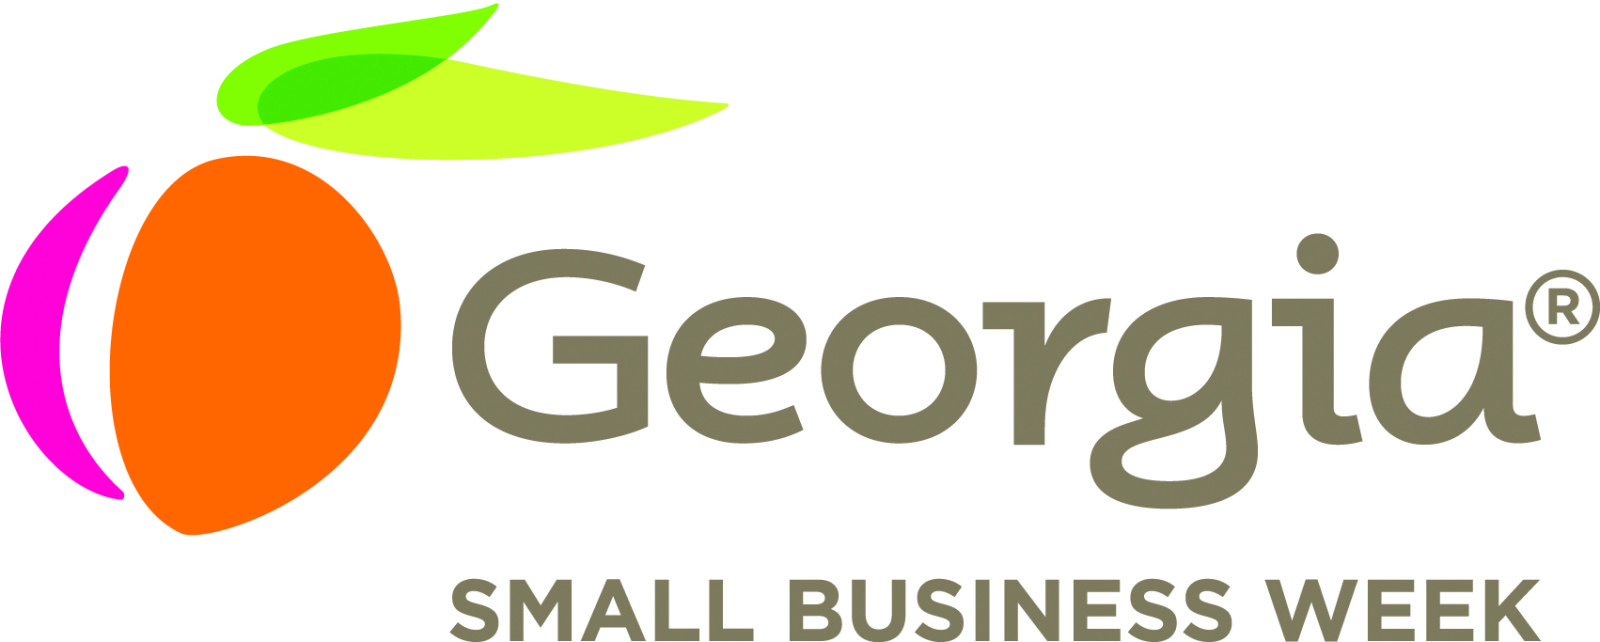 Georgia Small Business Week Logo